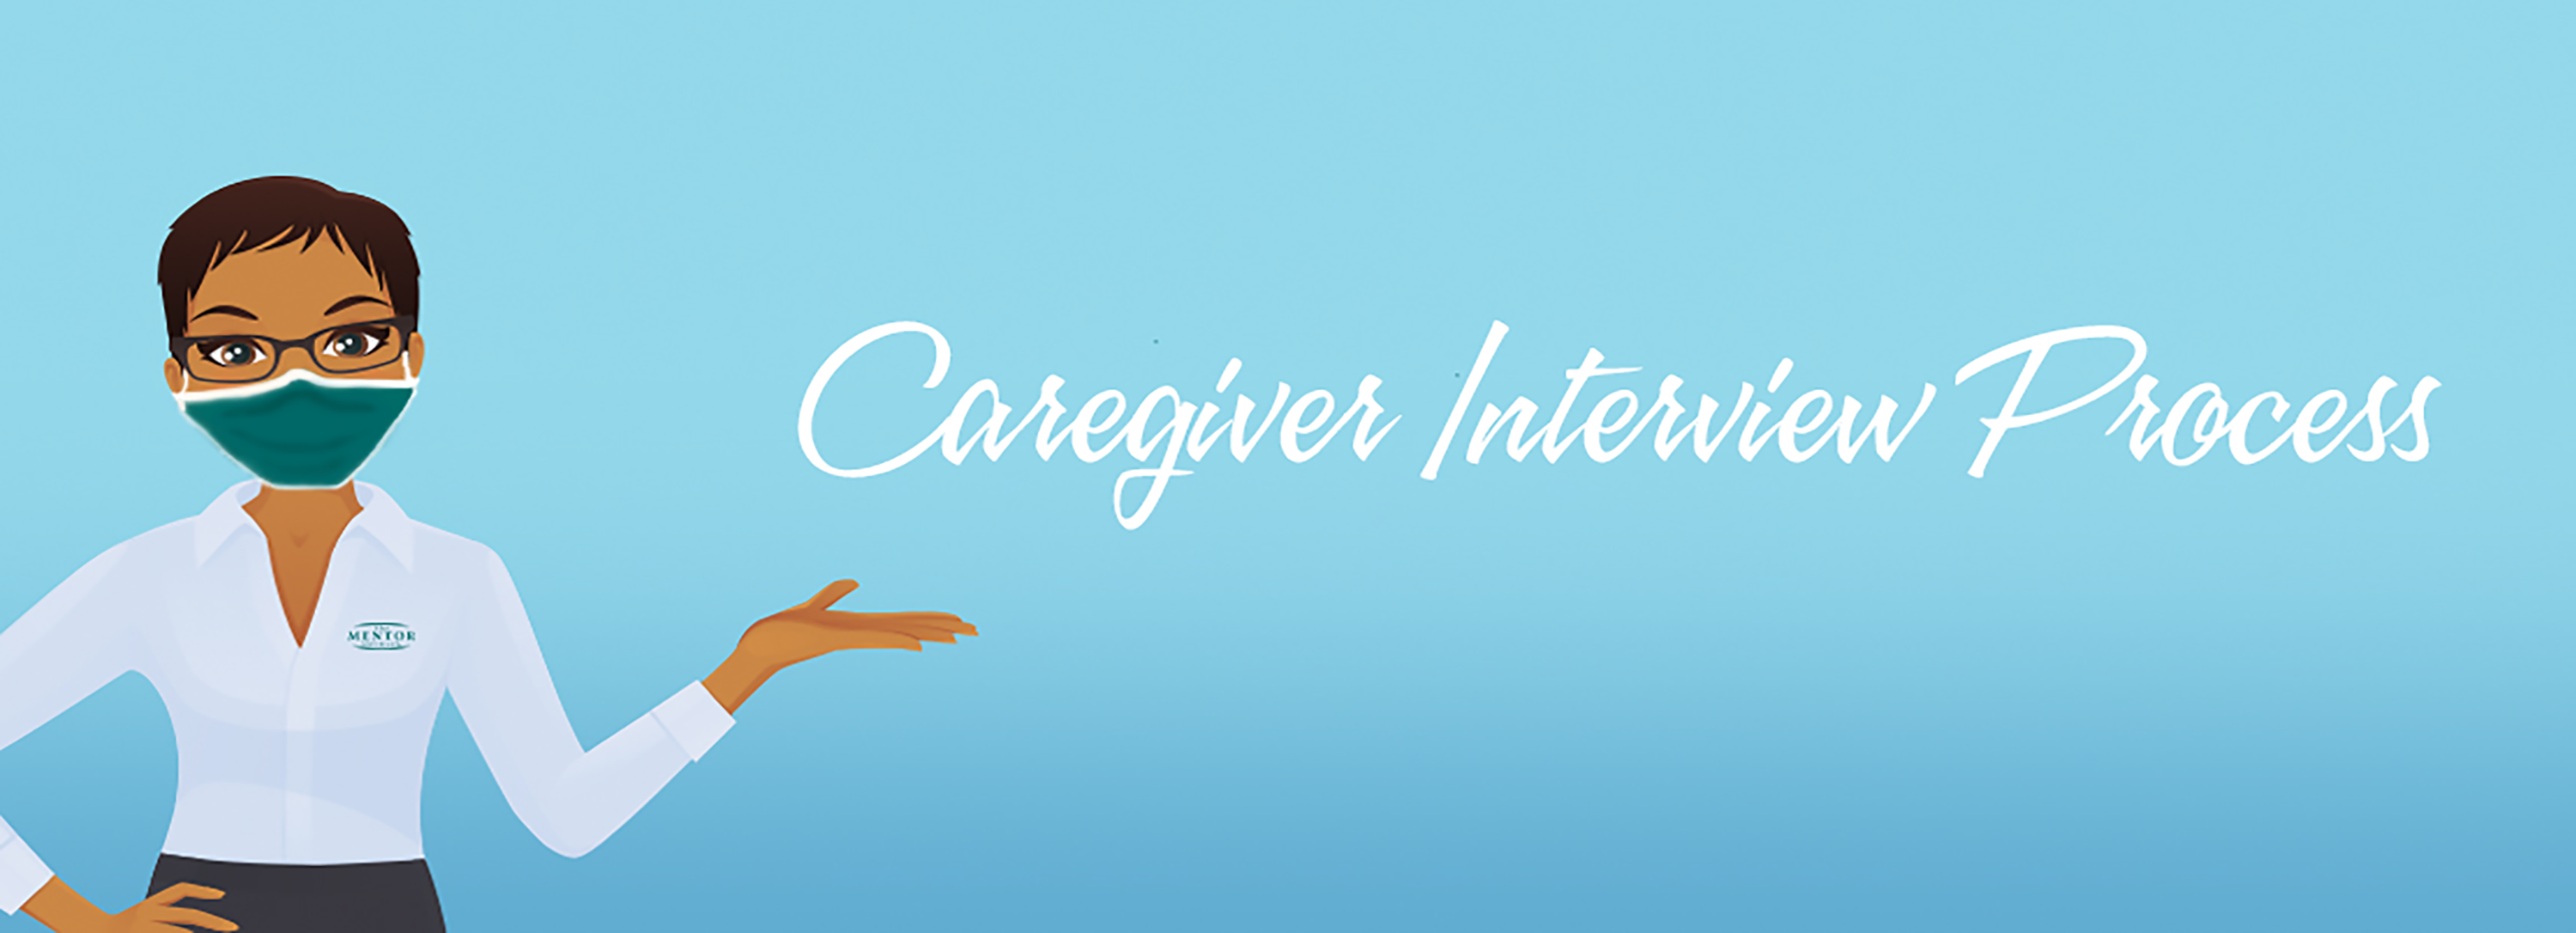 Caregiver Interview Process with Mask